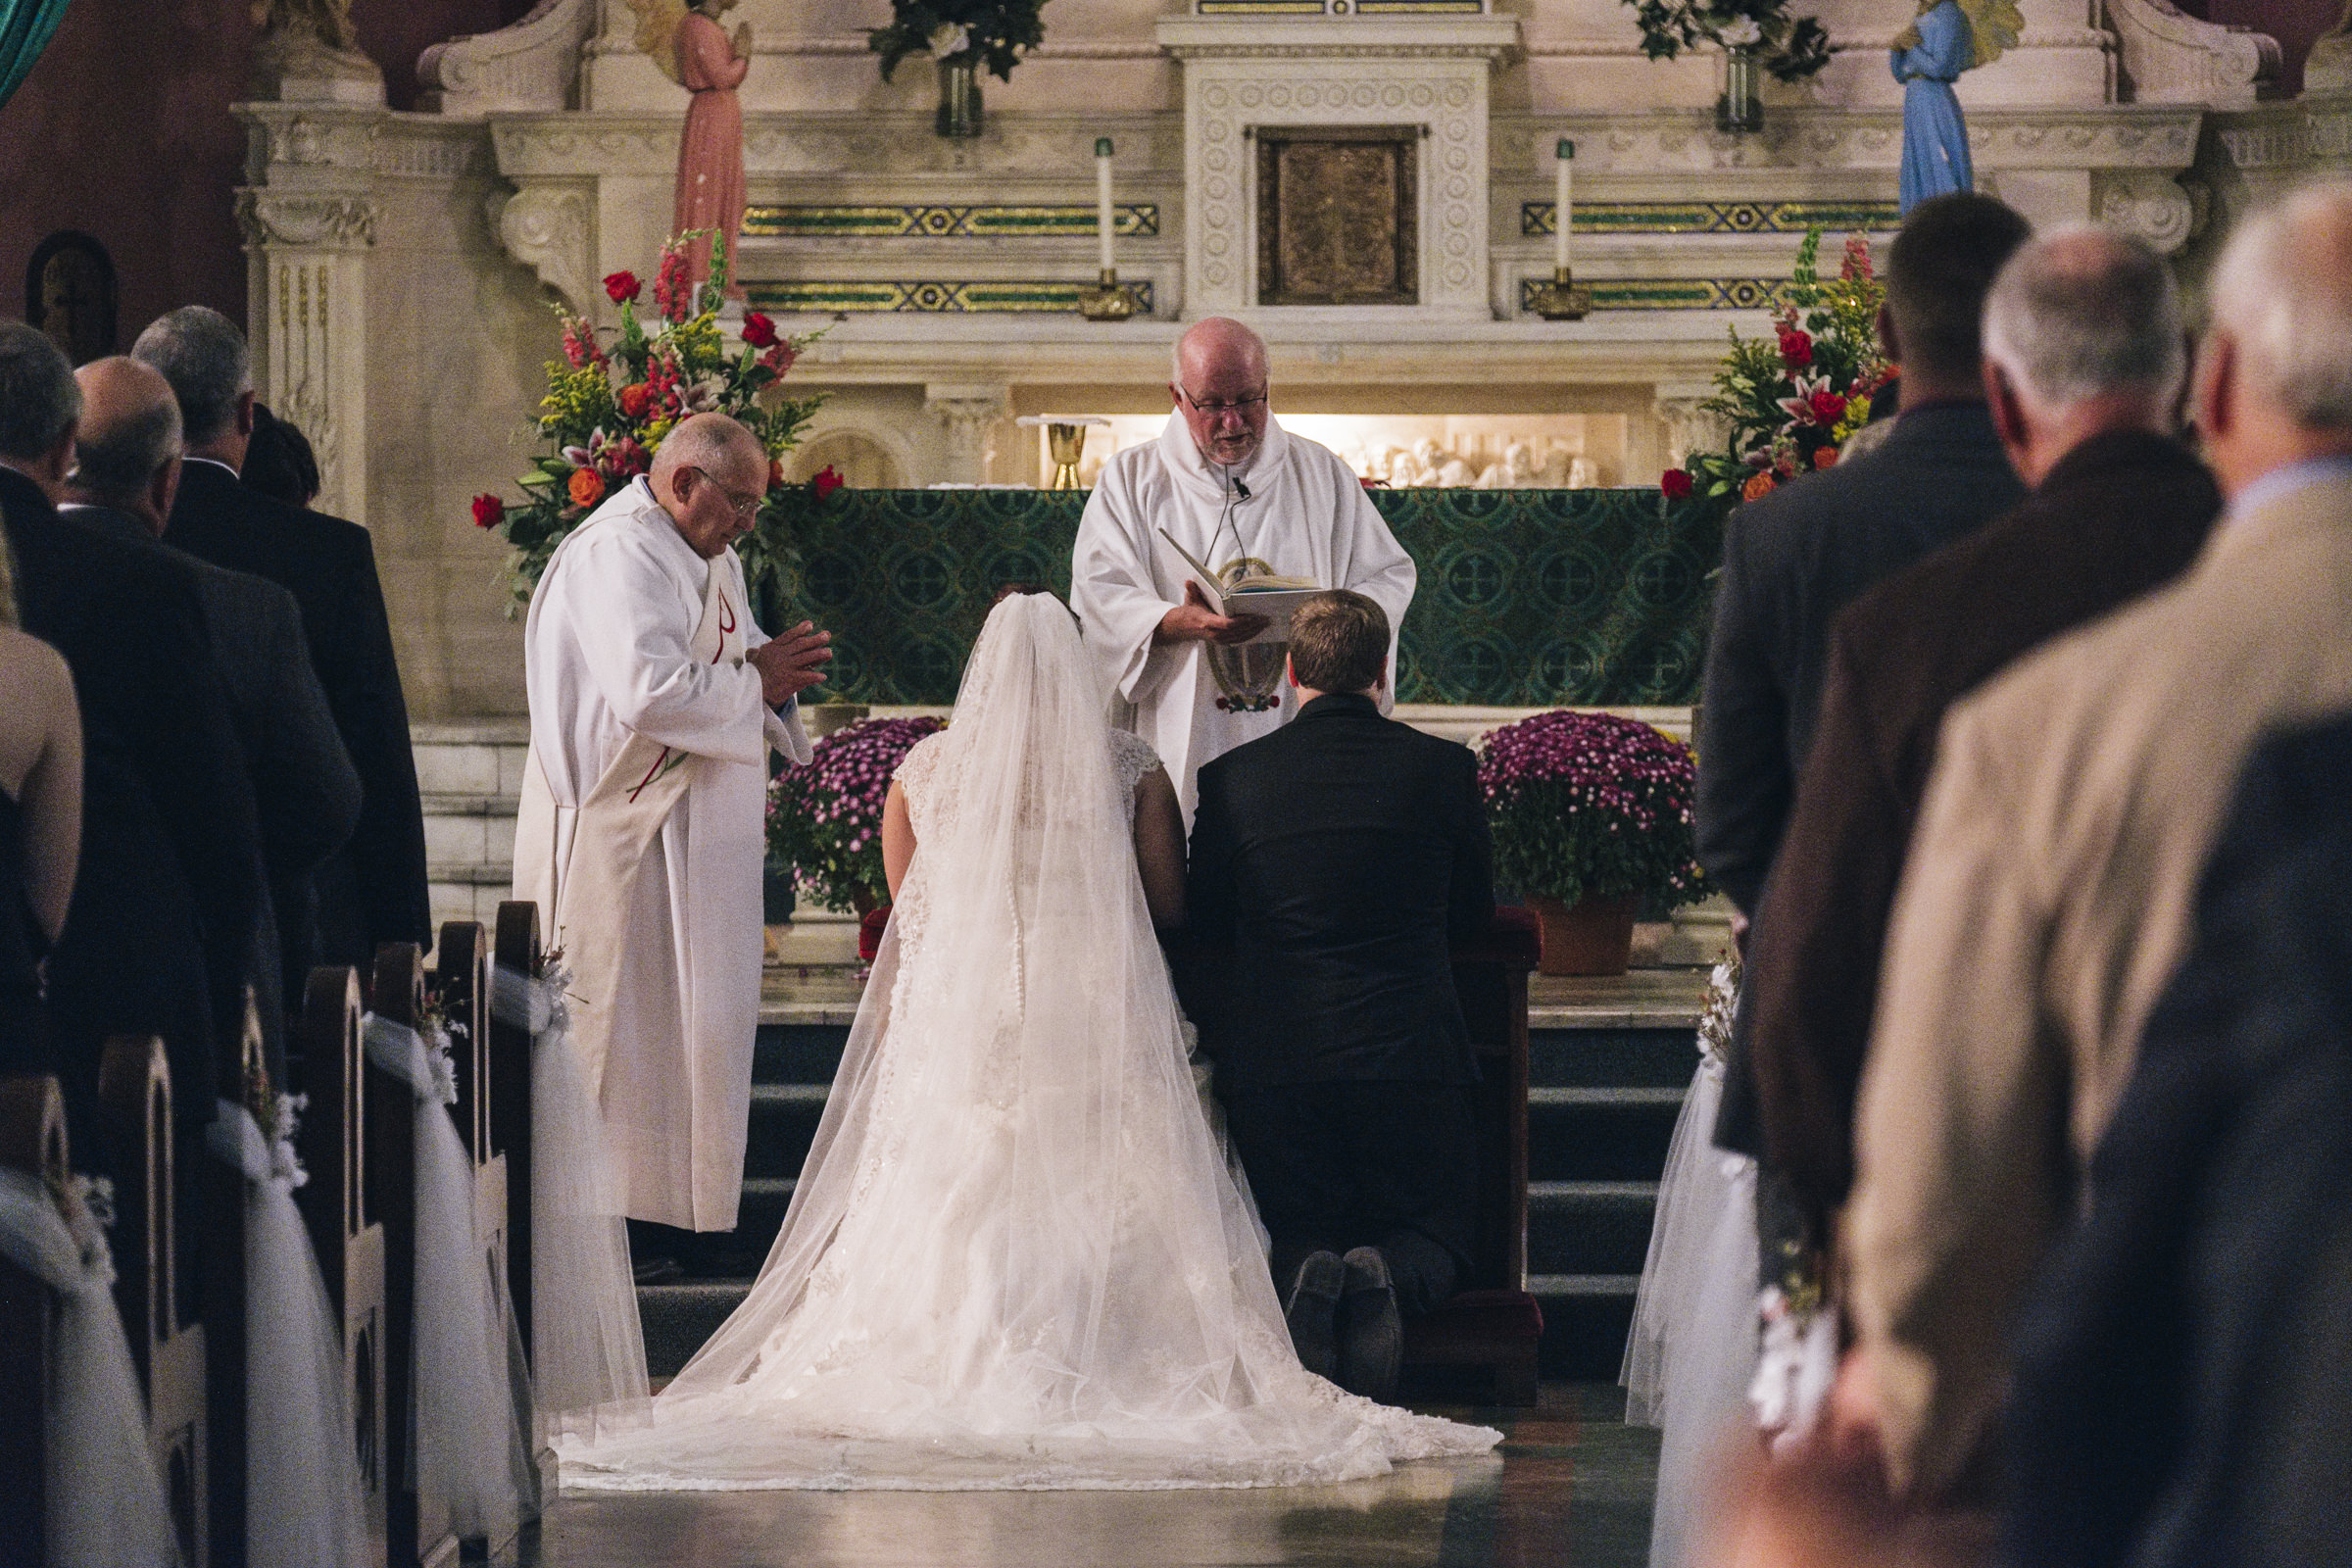 Bride and groom kneel at alter in honor of Hispanic wedding tradition